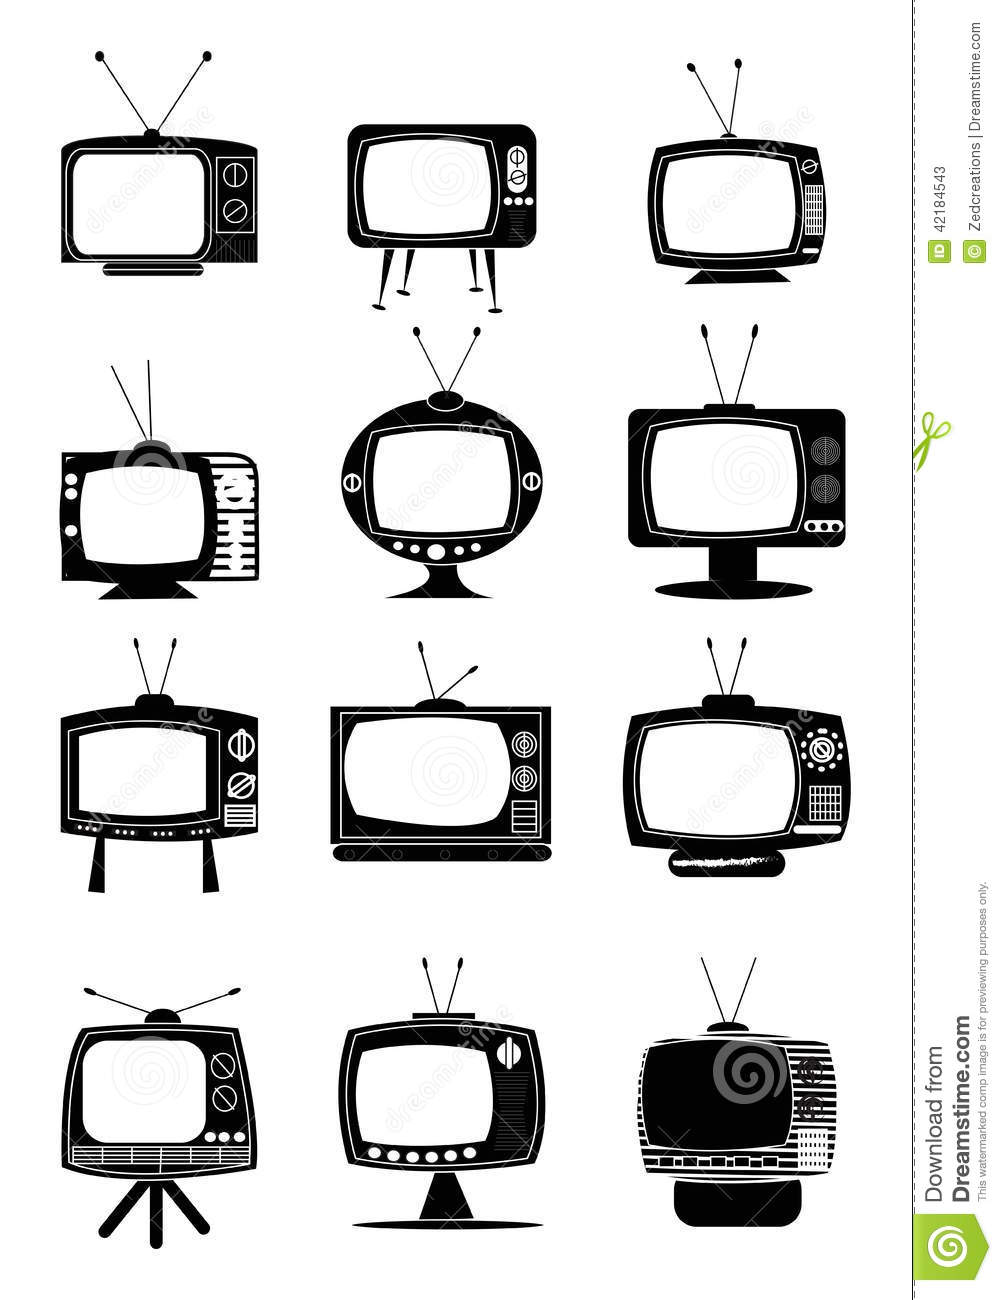 Royalty Free Stock Photo Big Set Antique Furniture Vector Image12962465 as well Silhouette Rice Carew Signed Duck Heron In Cypress Sw  5 Inch D9892175 moreover 80 Meter Vertical Loop likewise 1060150 additionally Fantasy Dragon Insignia 486567. on antique radio